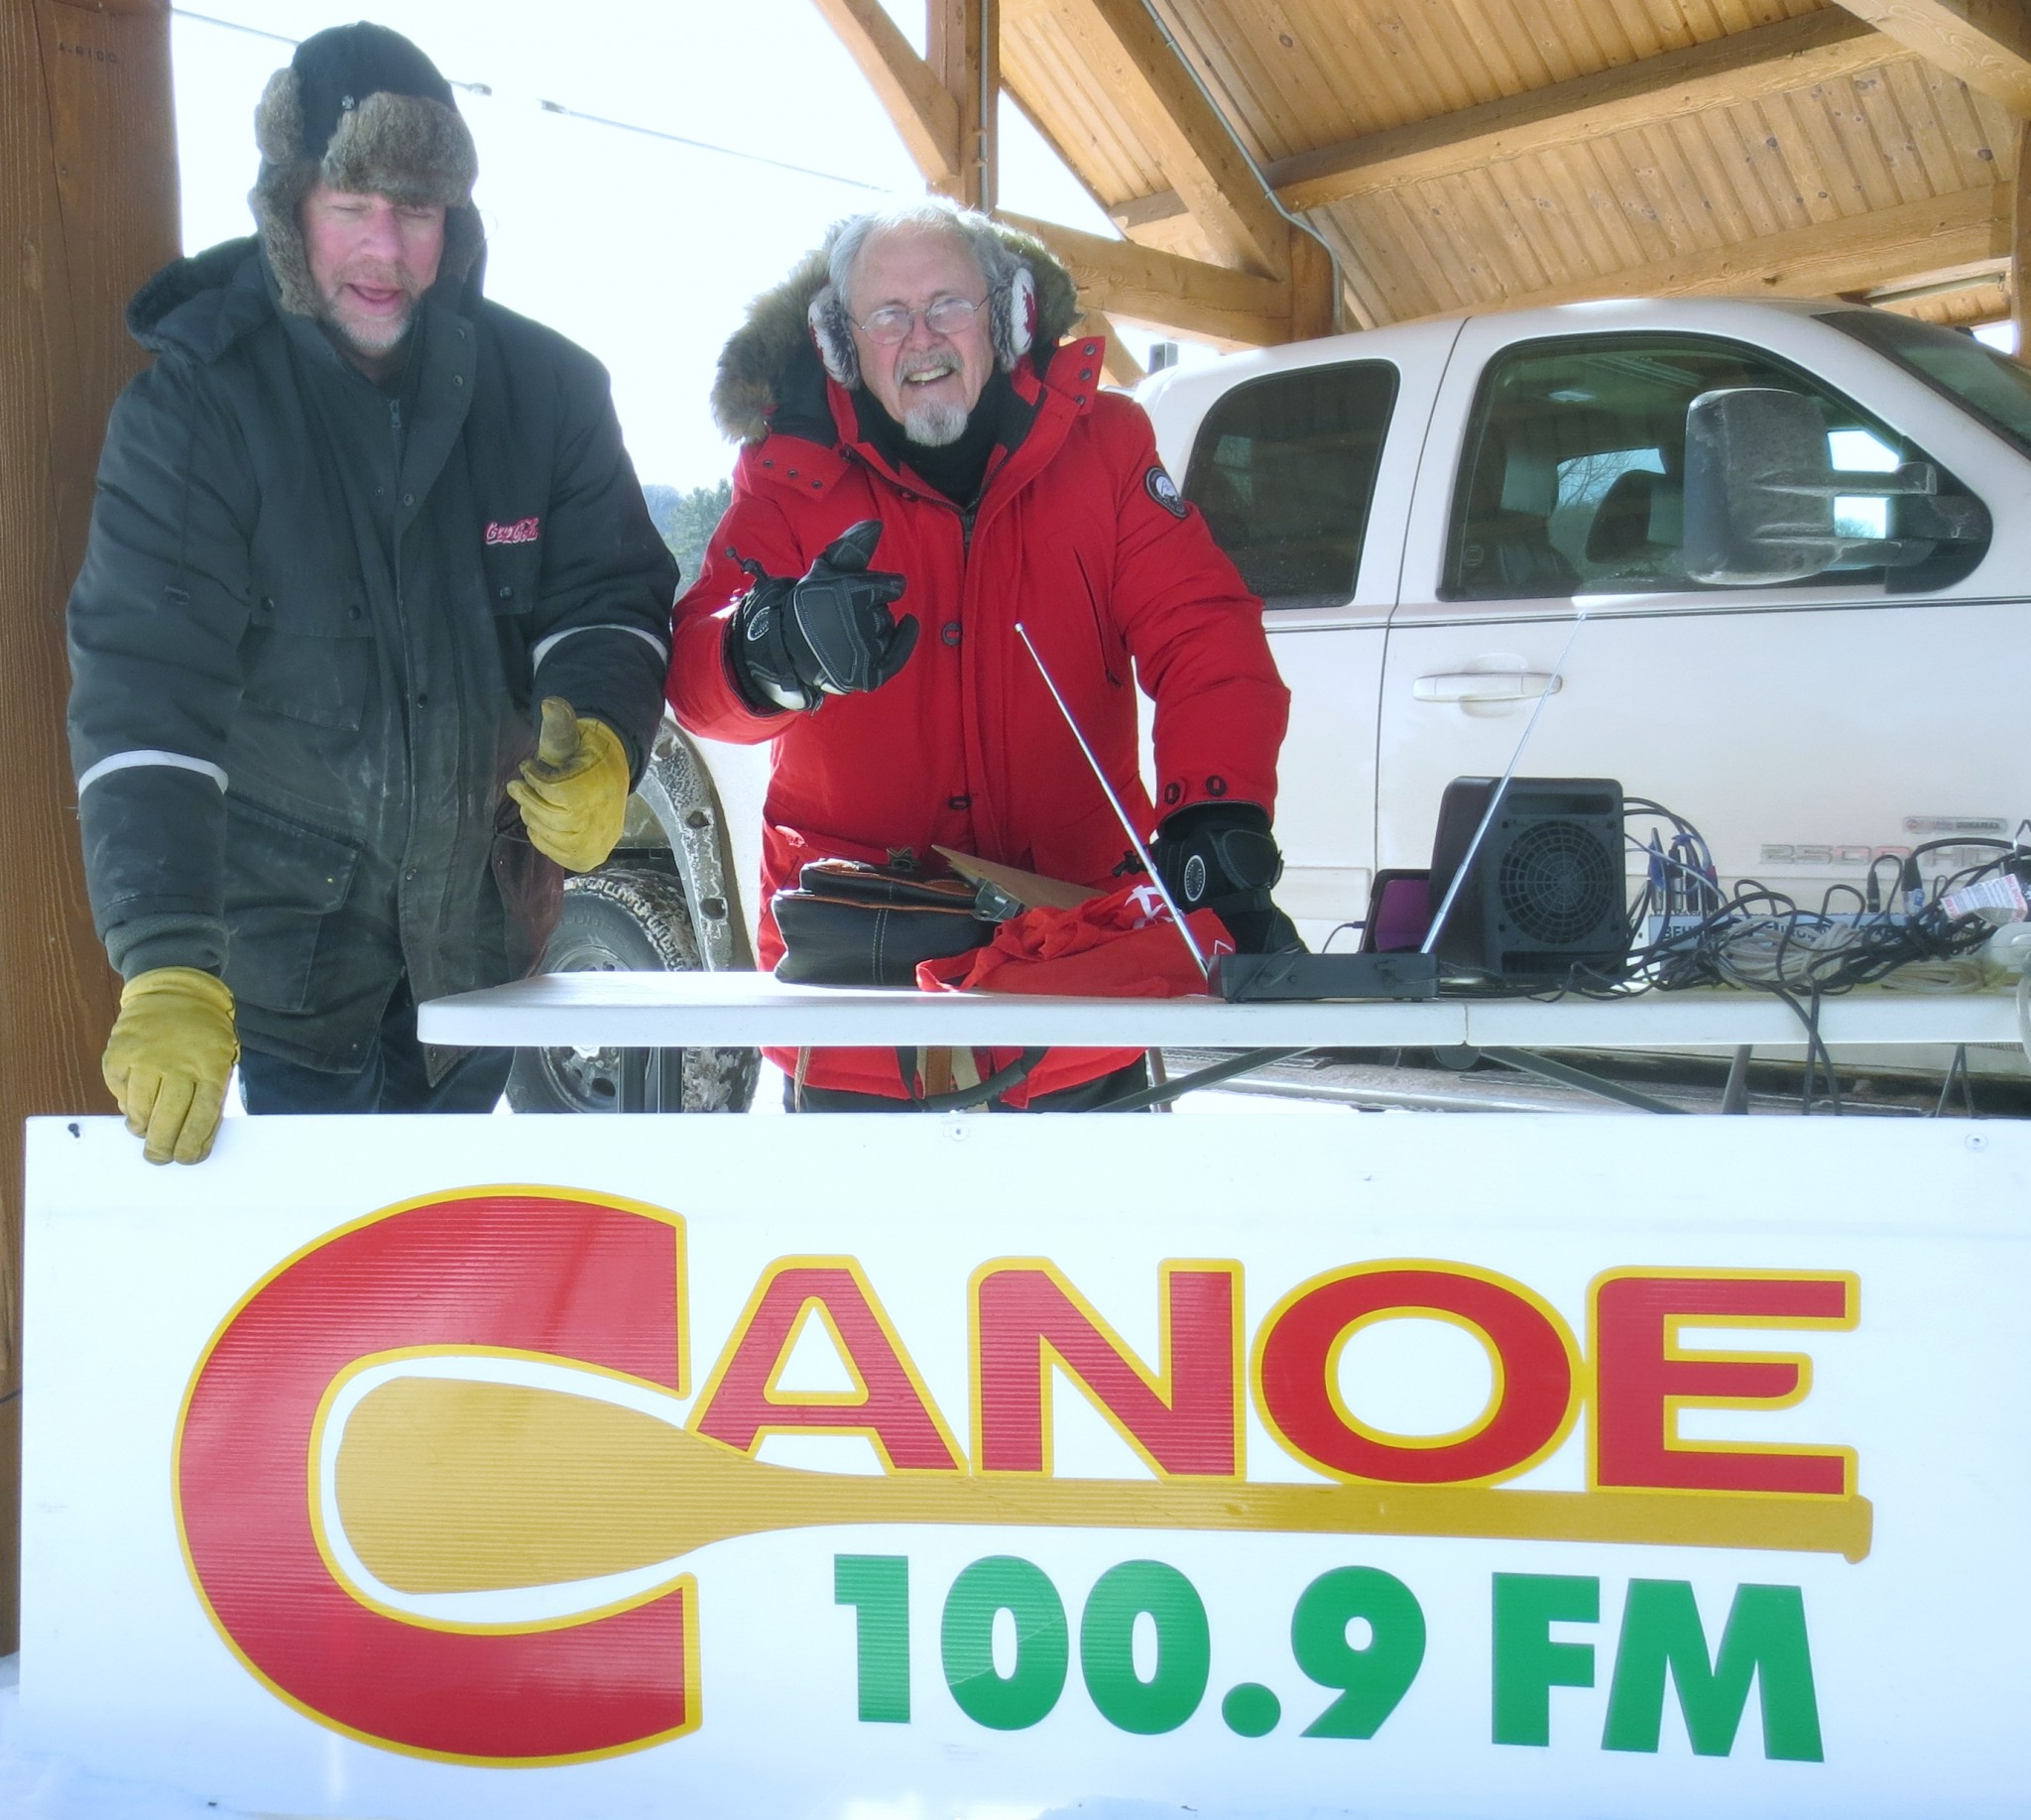 Canoe FM's Mike Jaycock and Ron Murphy reporting live from the Haliburton Lions Polar Bear Challenge event at the Frost Festival in Haliburton